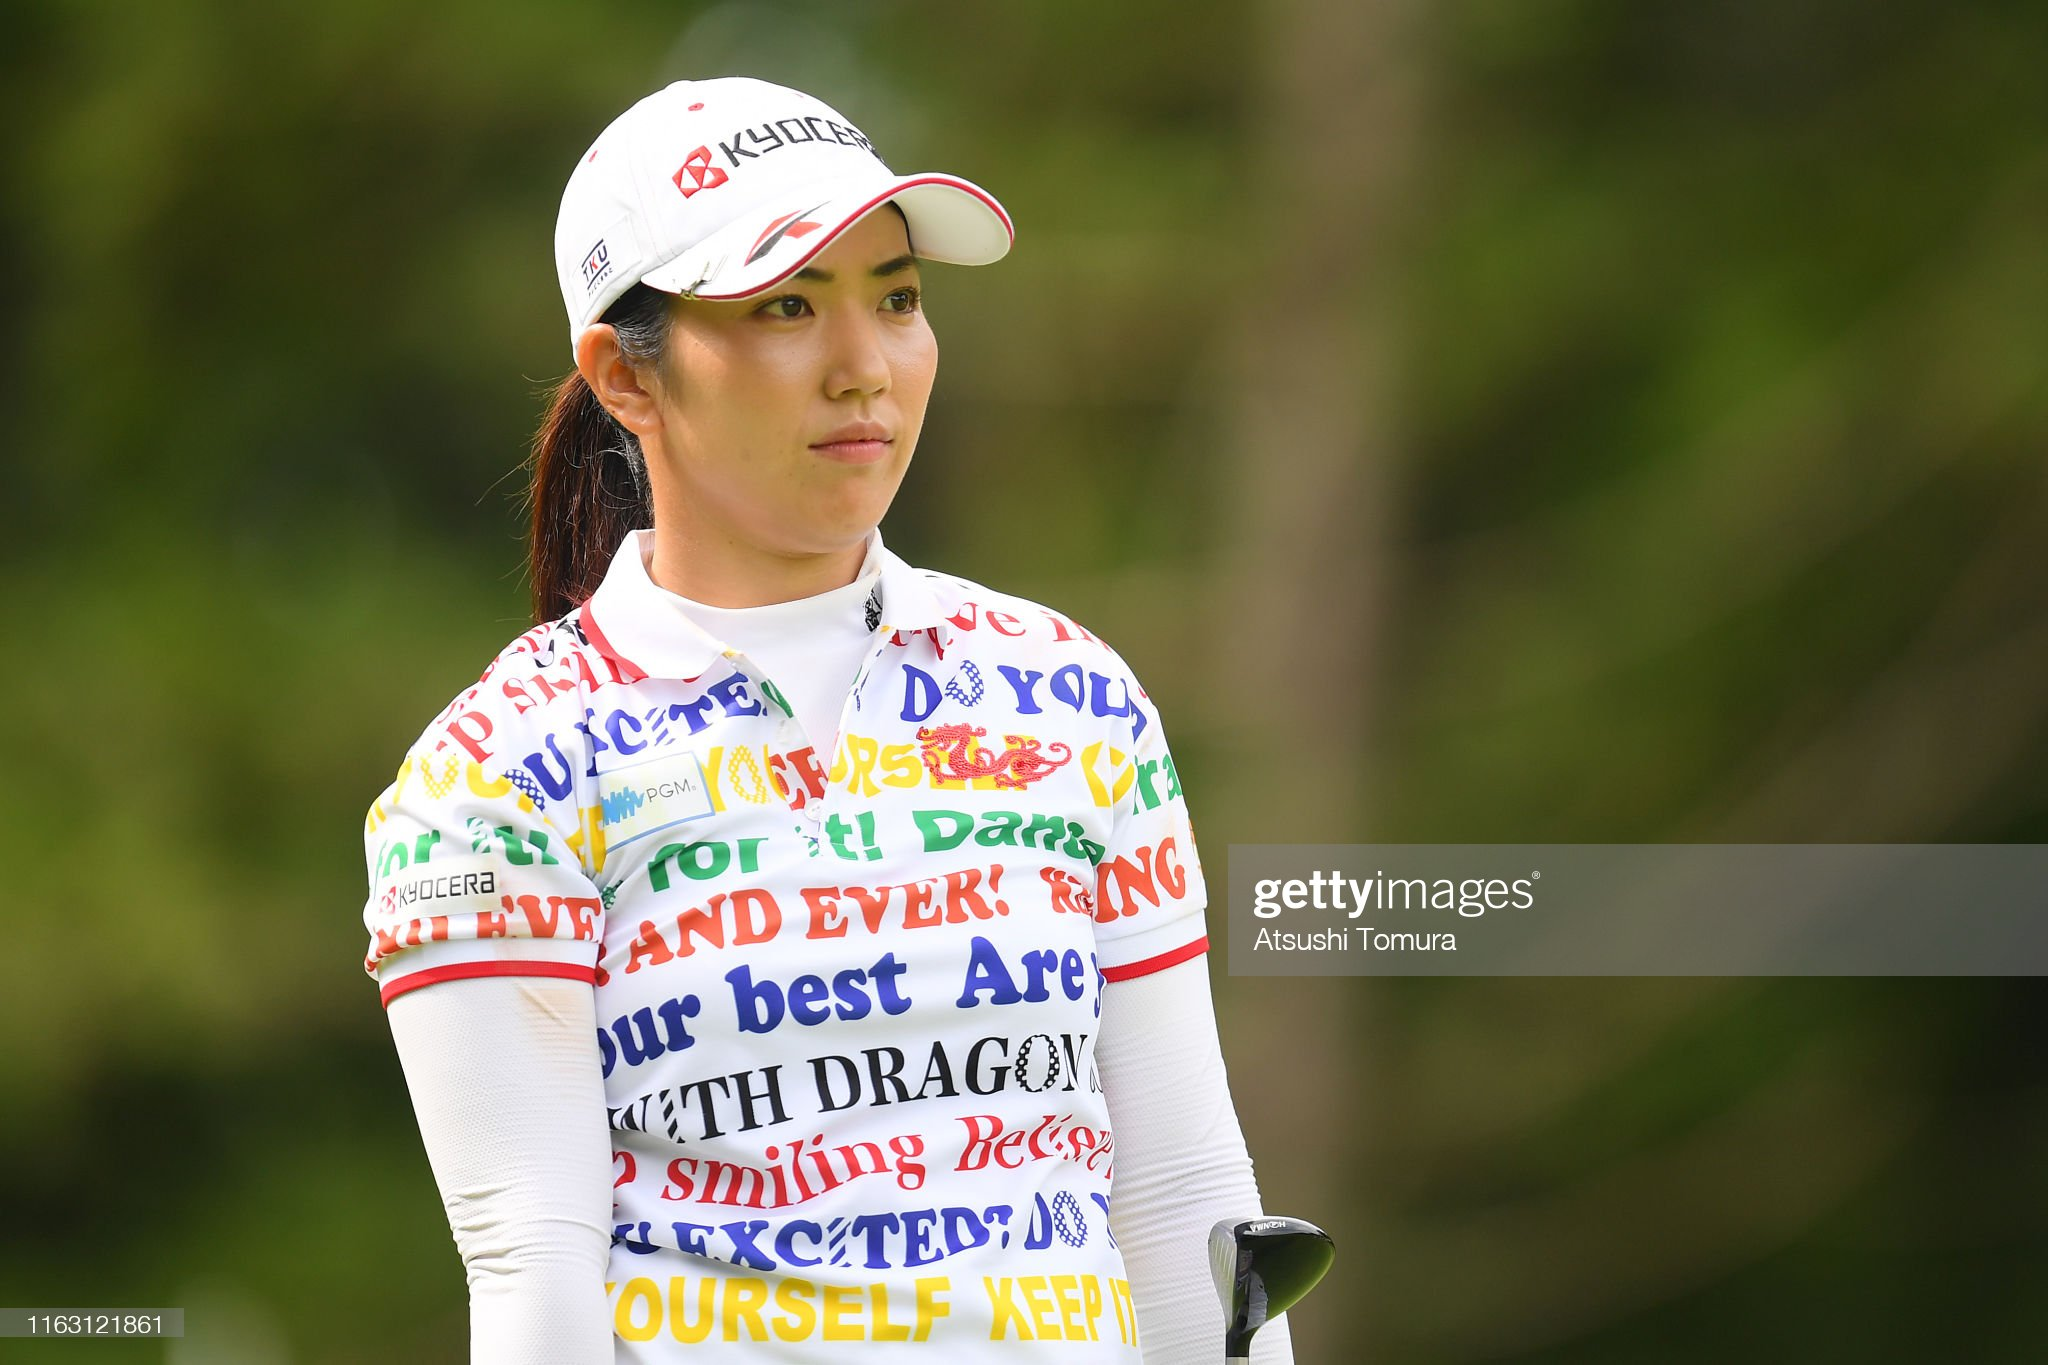 https://media.gettyimages.com/photos/ritsuko-ryu-of-japan-looks-on-during-the-second-round-of-the-thamansa-picture-id1163121861?s=2048x2048